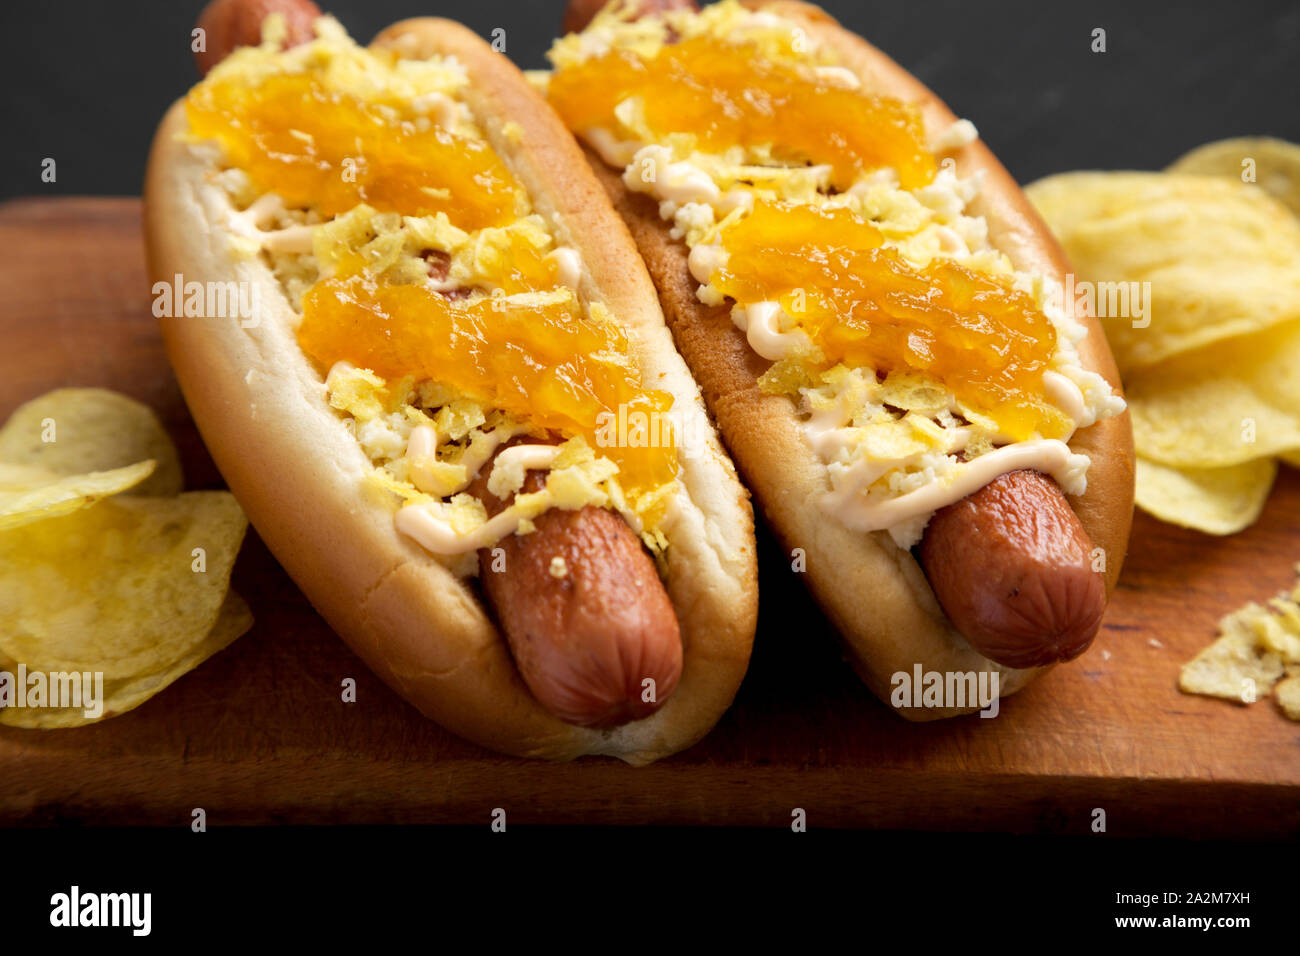 Homemade colombian hot dogs with pineapple sauce, chips and mayo ketchup on a rustic wooden board on a black background, side view. Close-up. Stock Photo